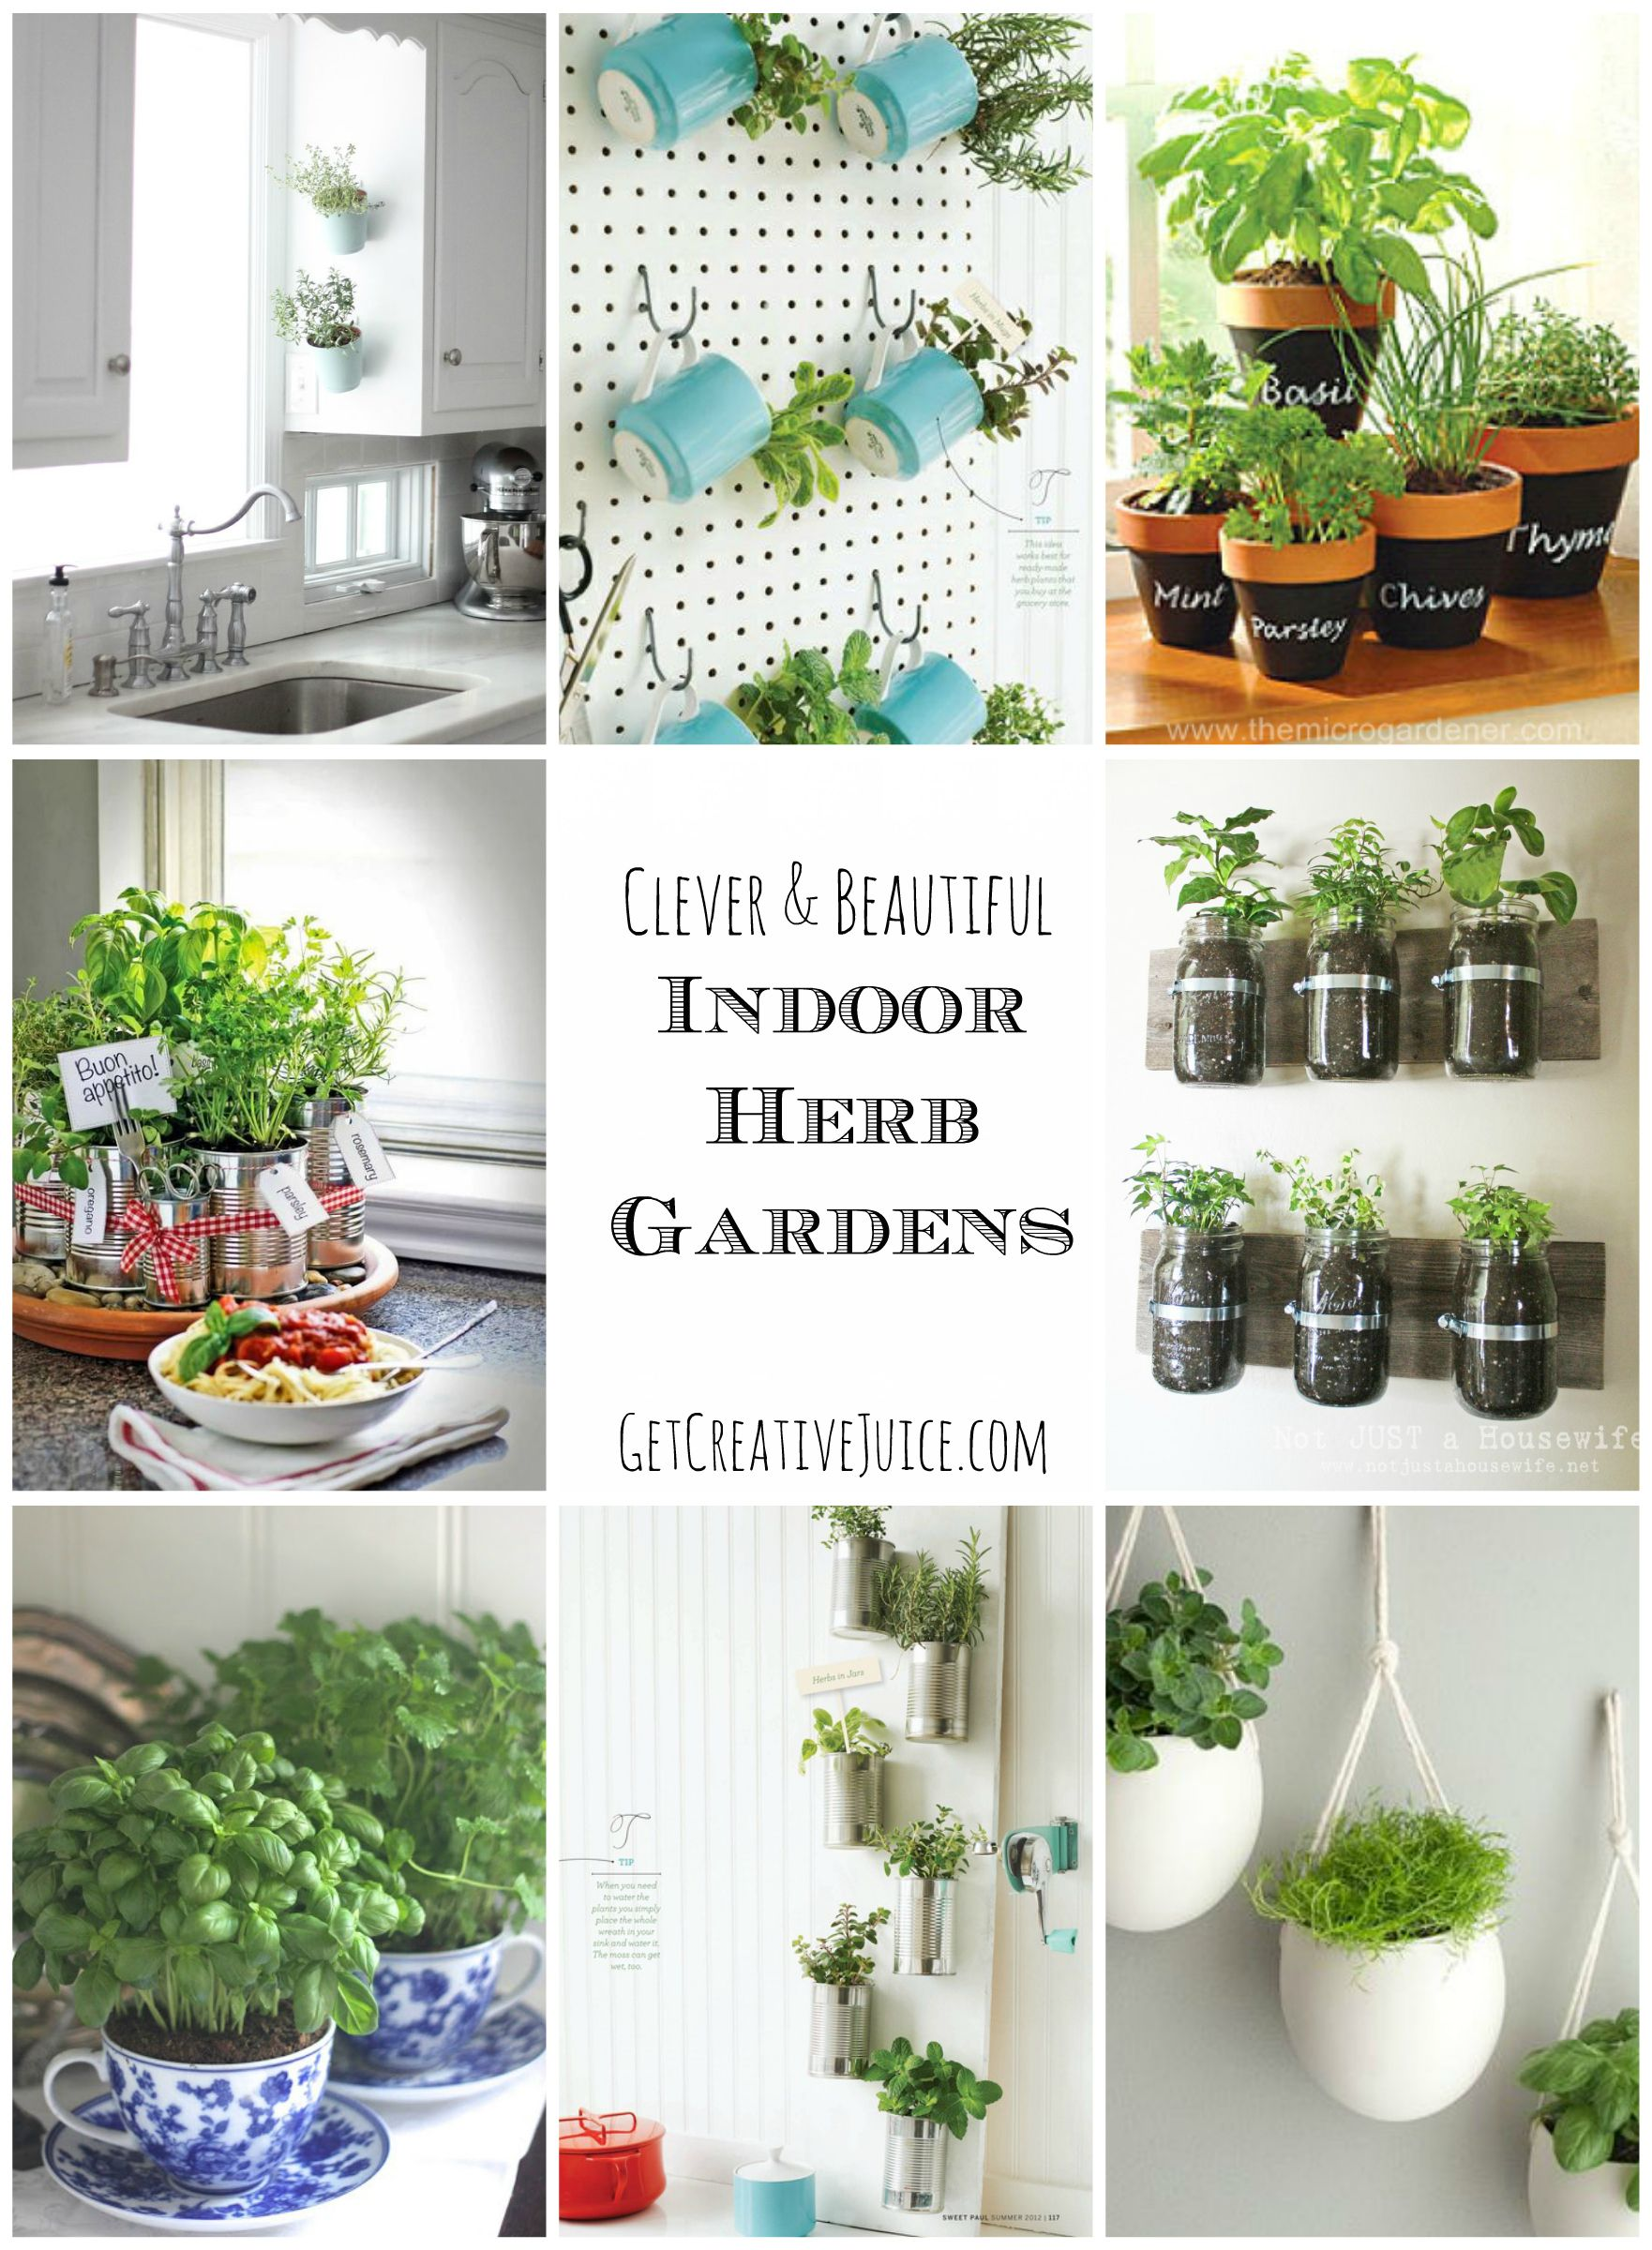 kitchen garden ideas kitchen plants garden ideas diy kitchen herb